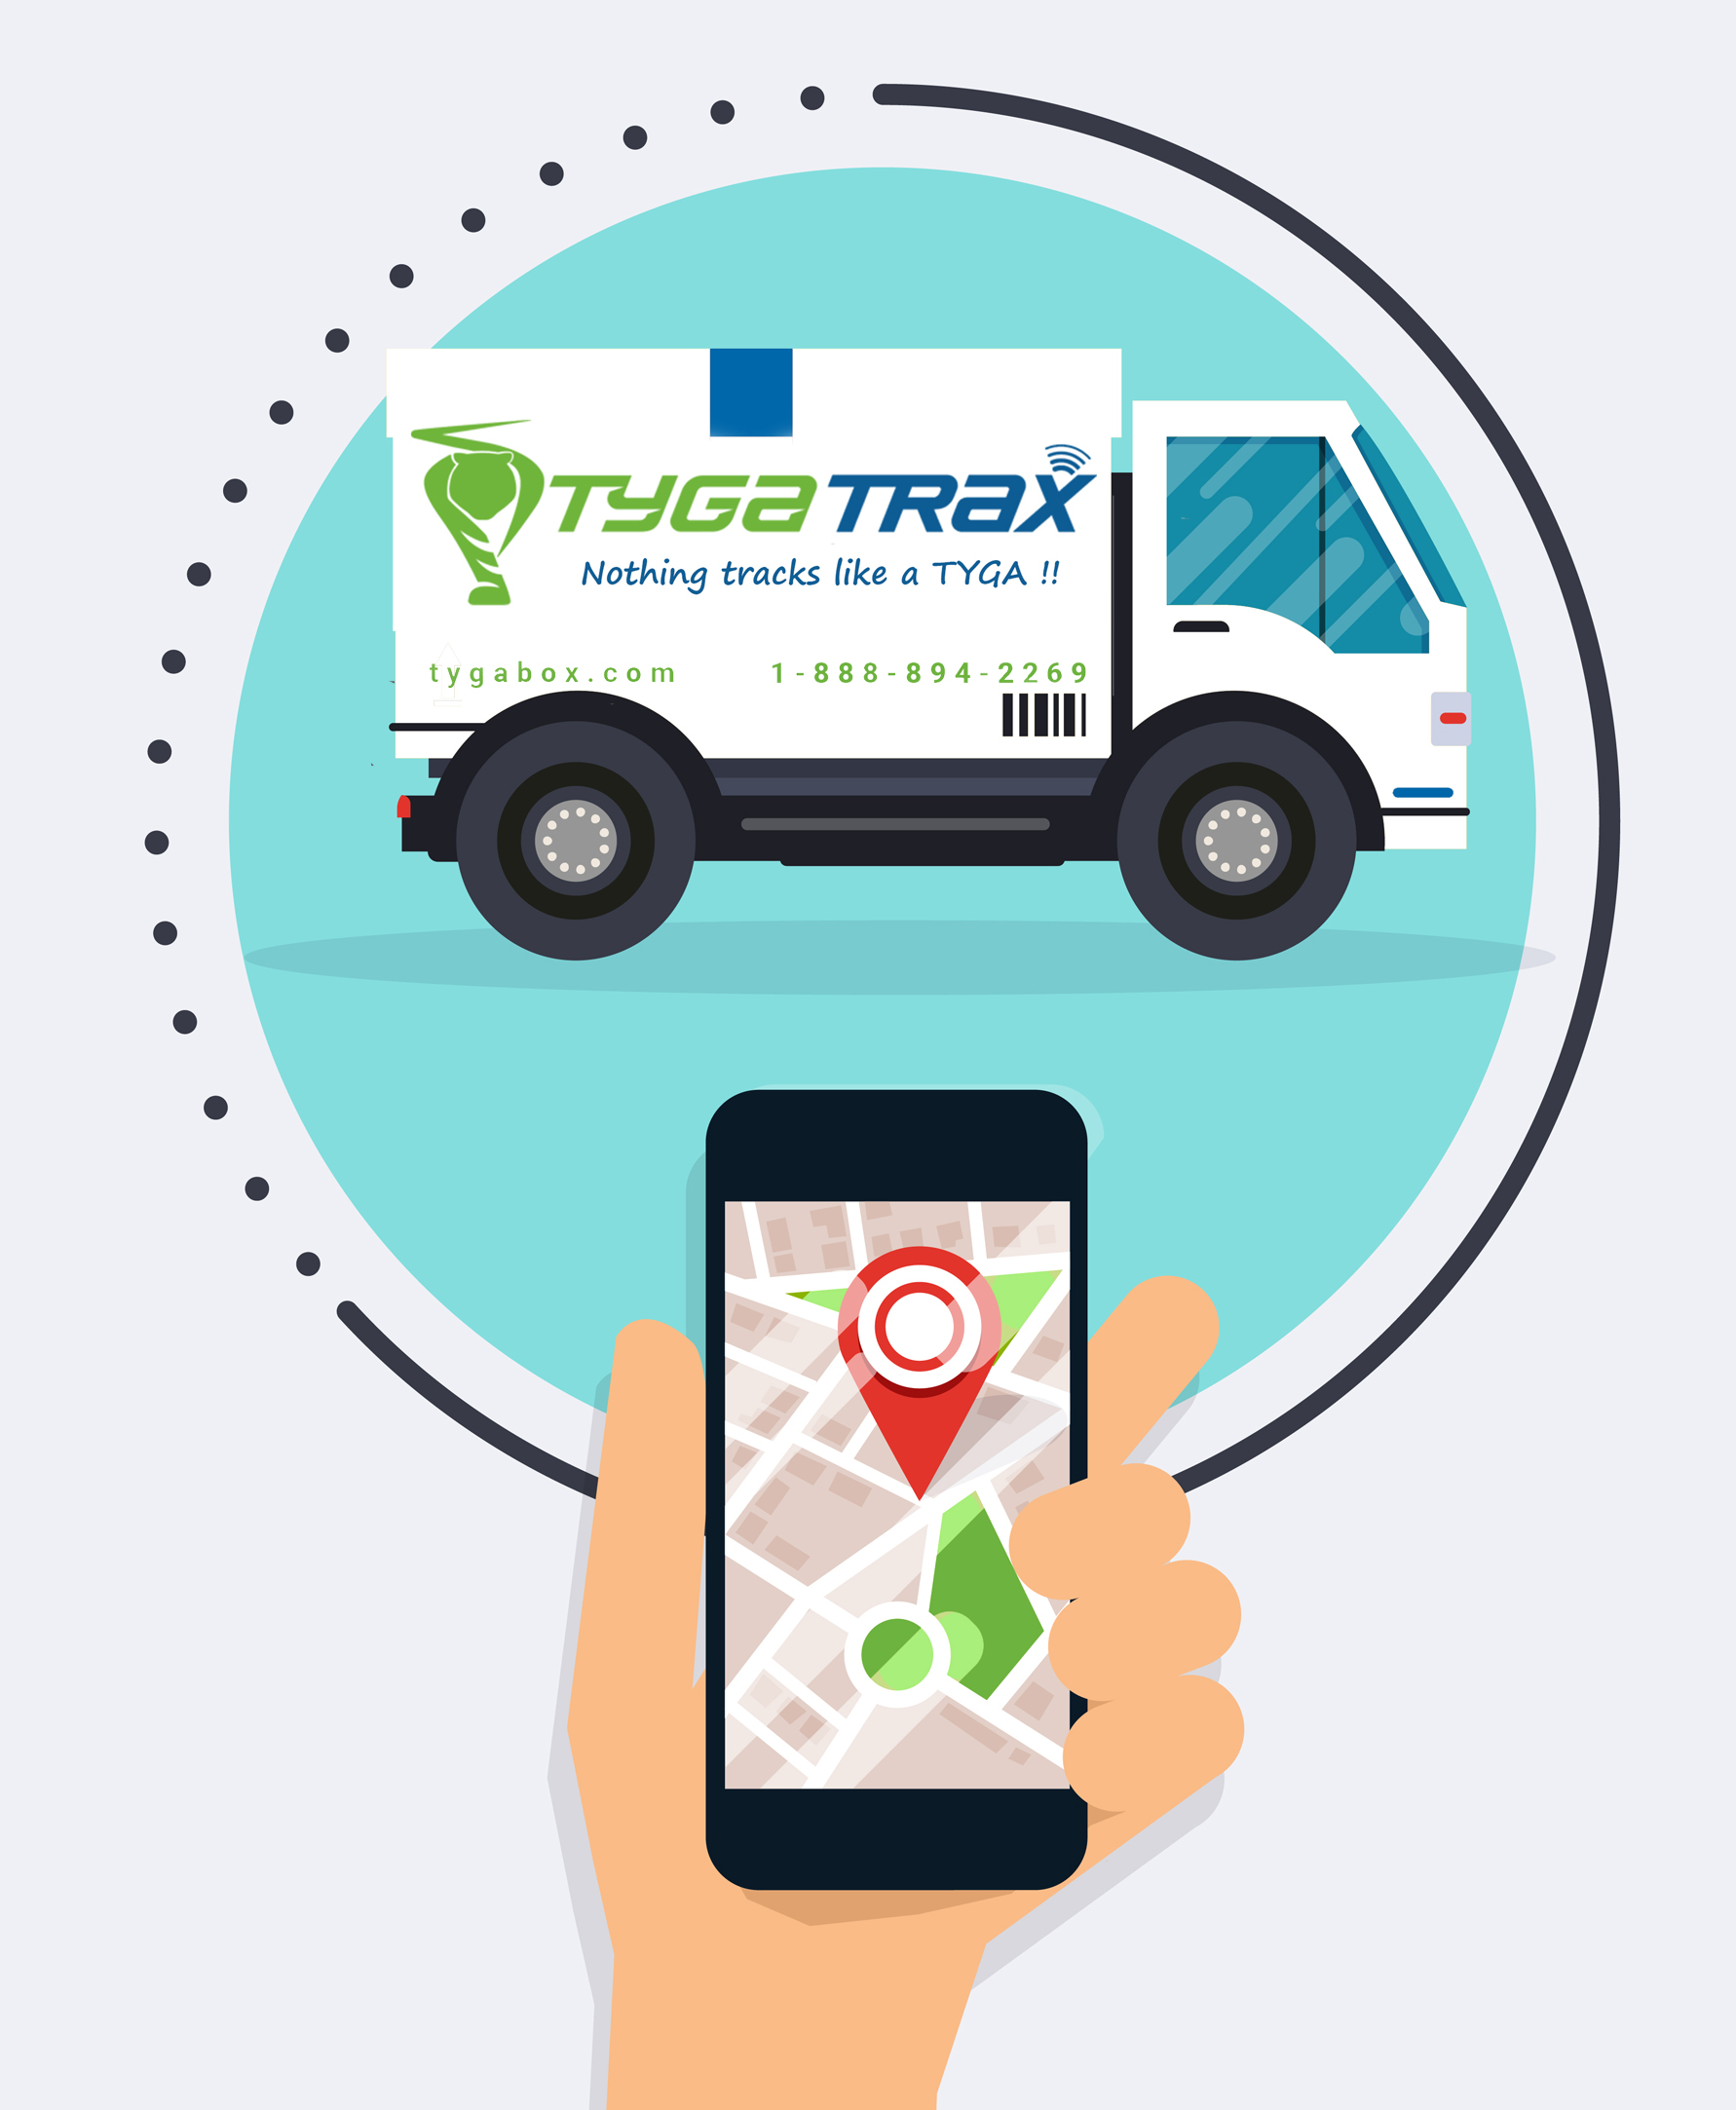 tyga TRAX delivery truck tracking small cropped